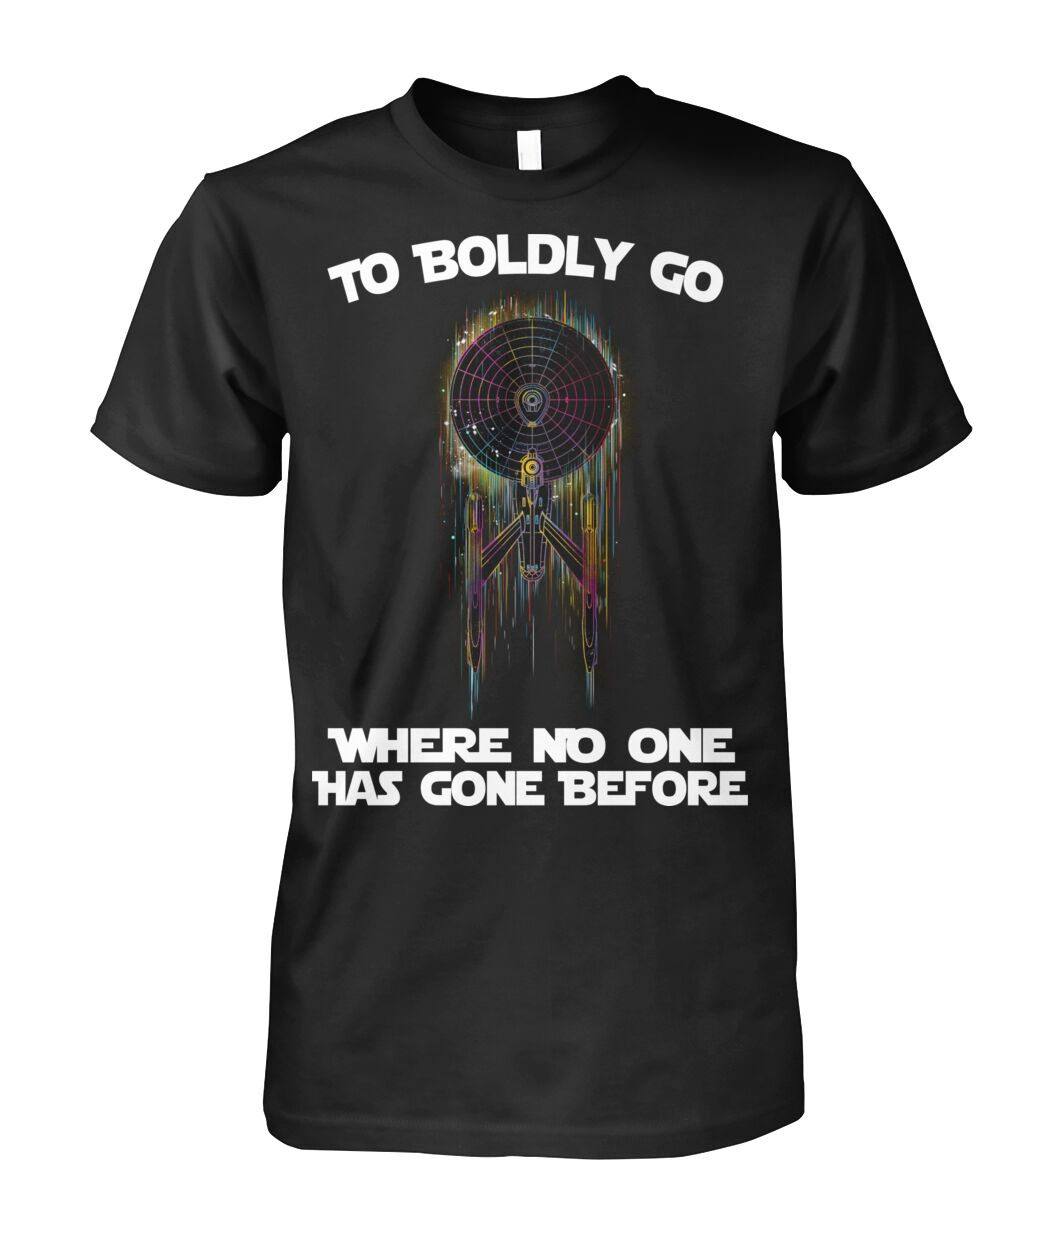 star trek to boldly go where no one has gone before tshirt